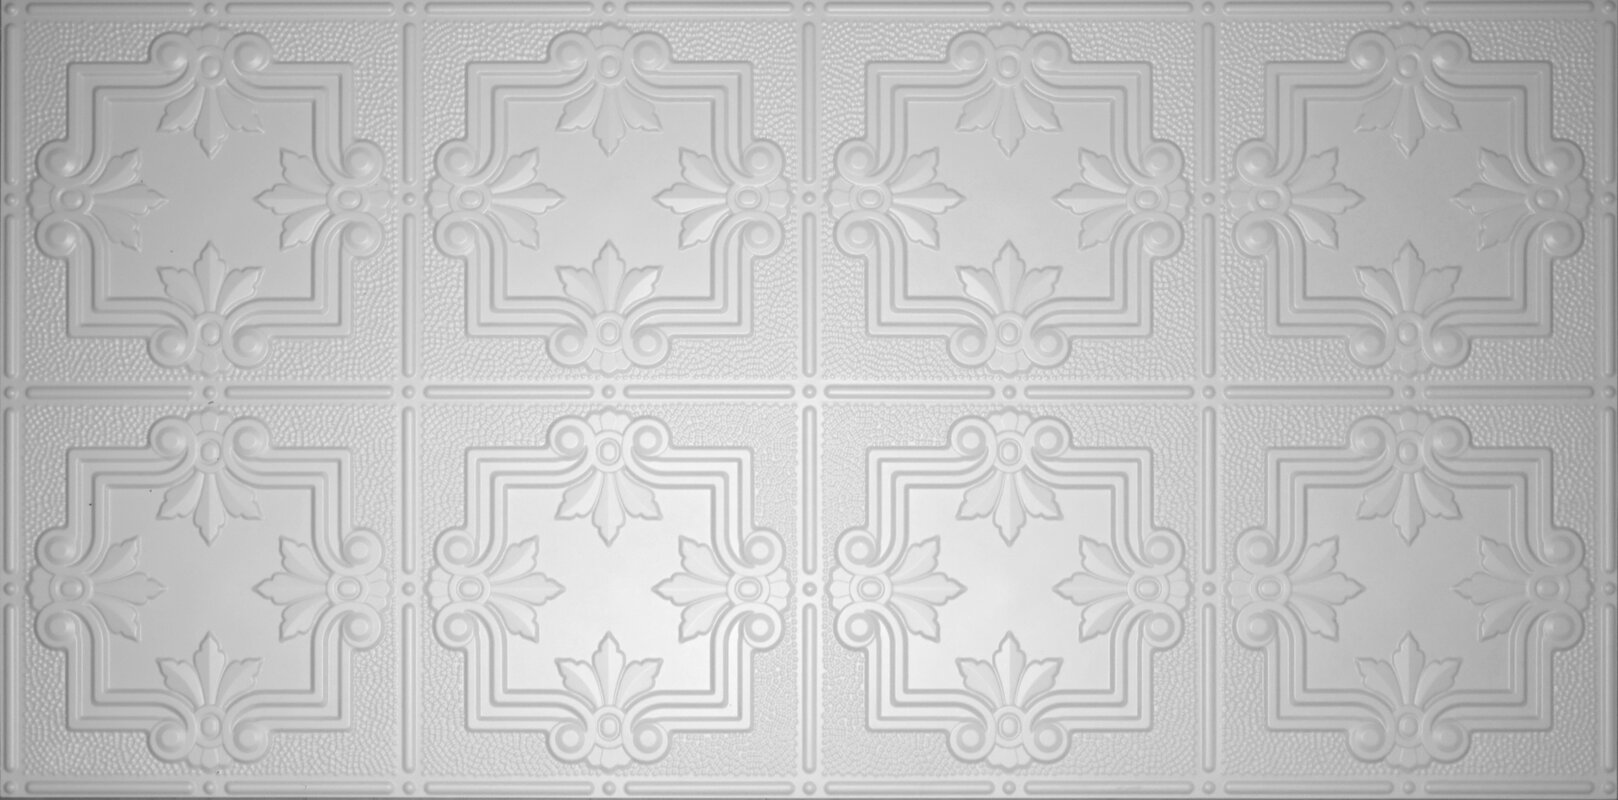 Global specialty products glue up fleur de lis pattern 2 x 4 tin glue up fleur de lis pattern 2 x 4 tin ceiling tile in dailygadgetfo Images